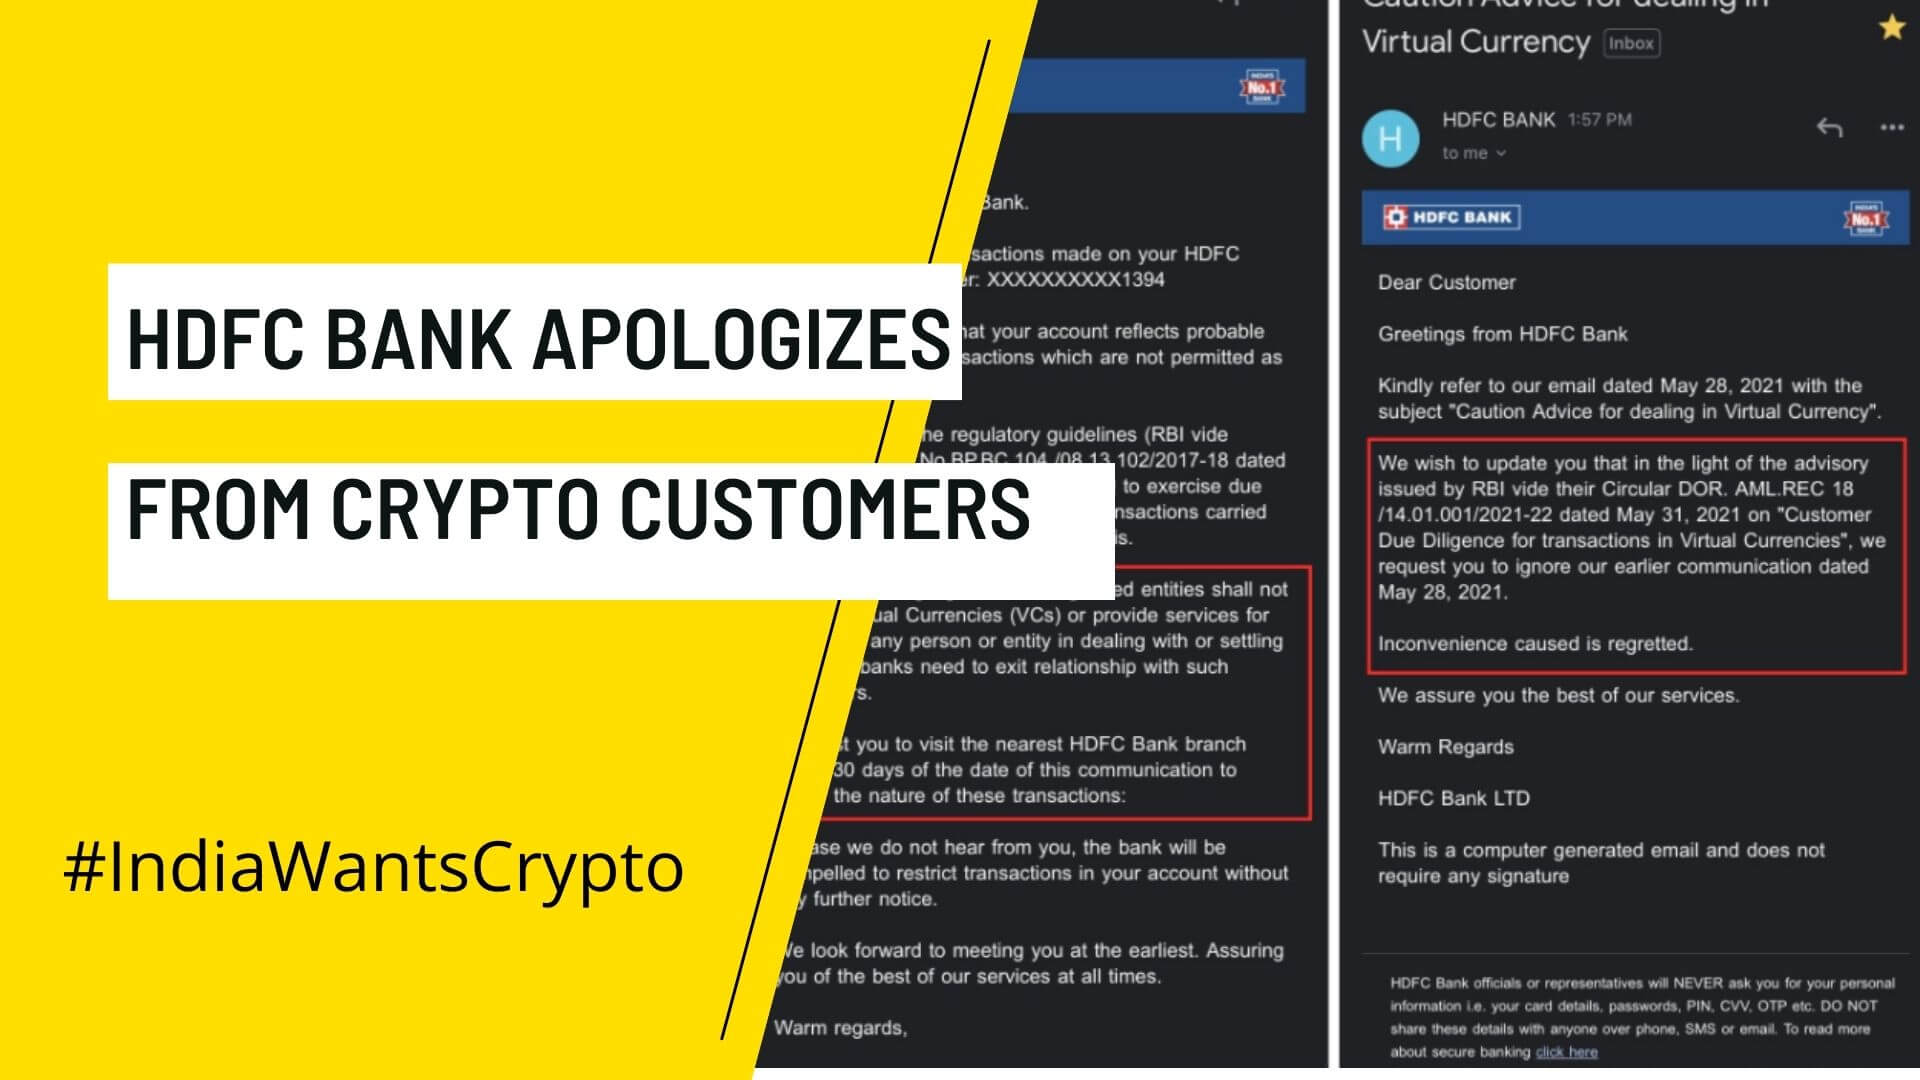 HDFC Bank Said Sorry For Crypto Transaction